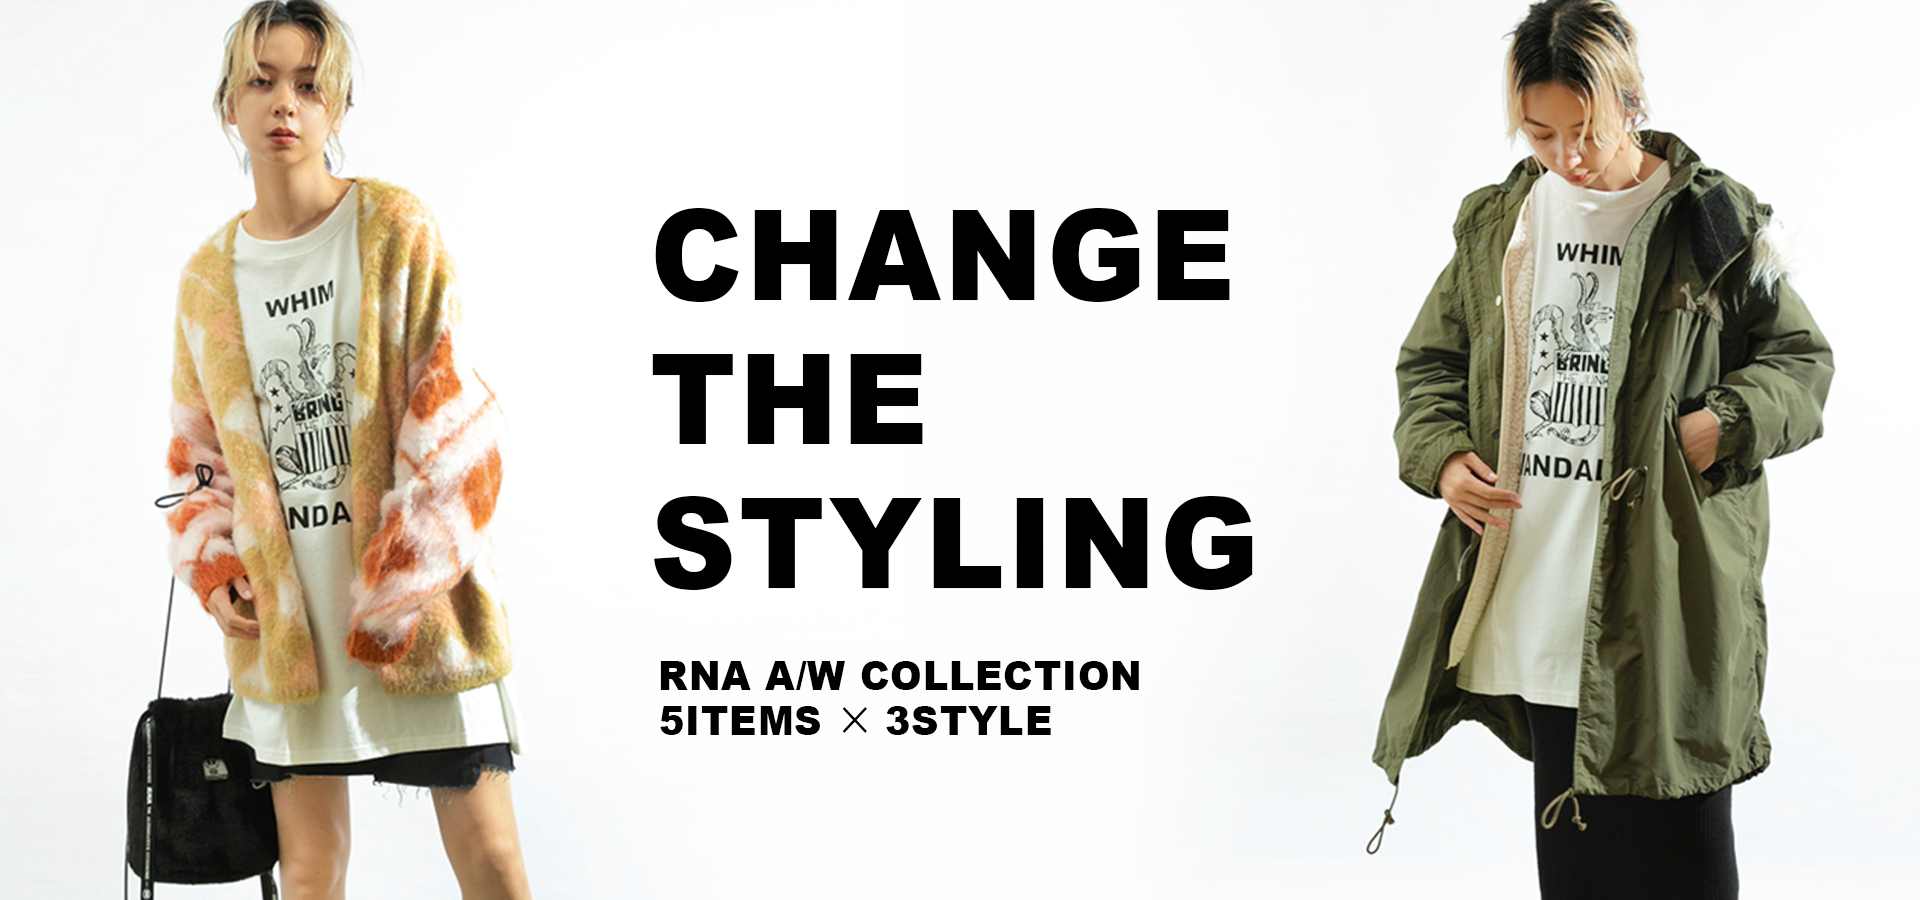 RNA CHANGE THE STYLING